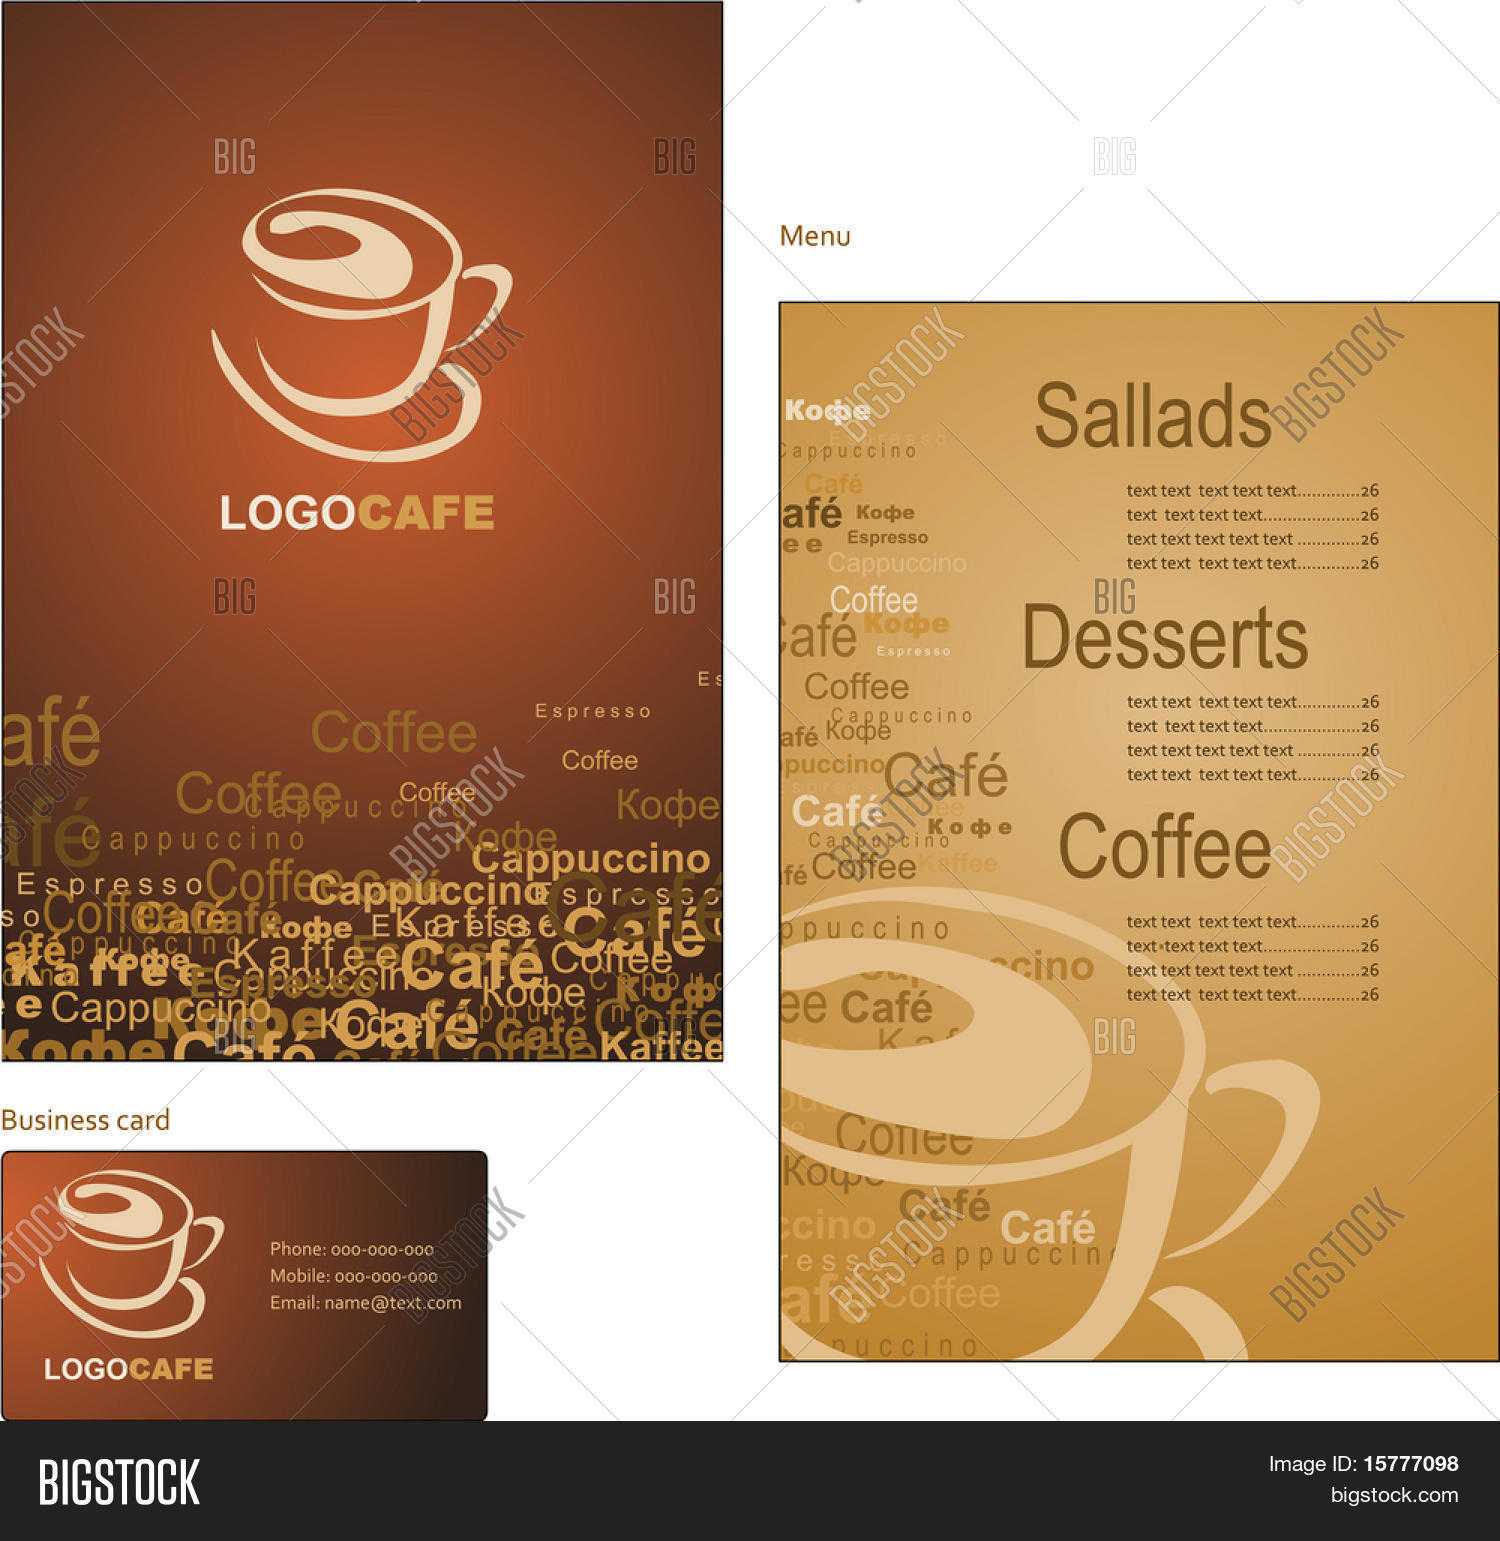 Template designs menu vector photo free trial bigstock close image preview image preview template designs of menu and business card accmission Choice Image